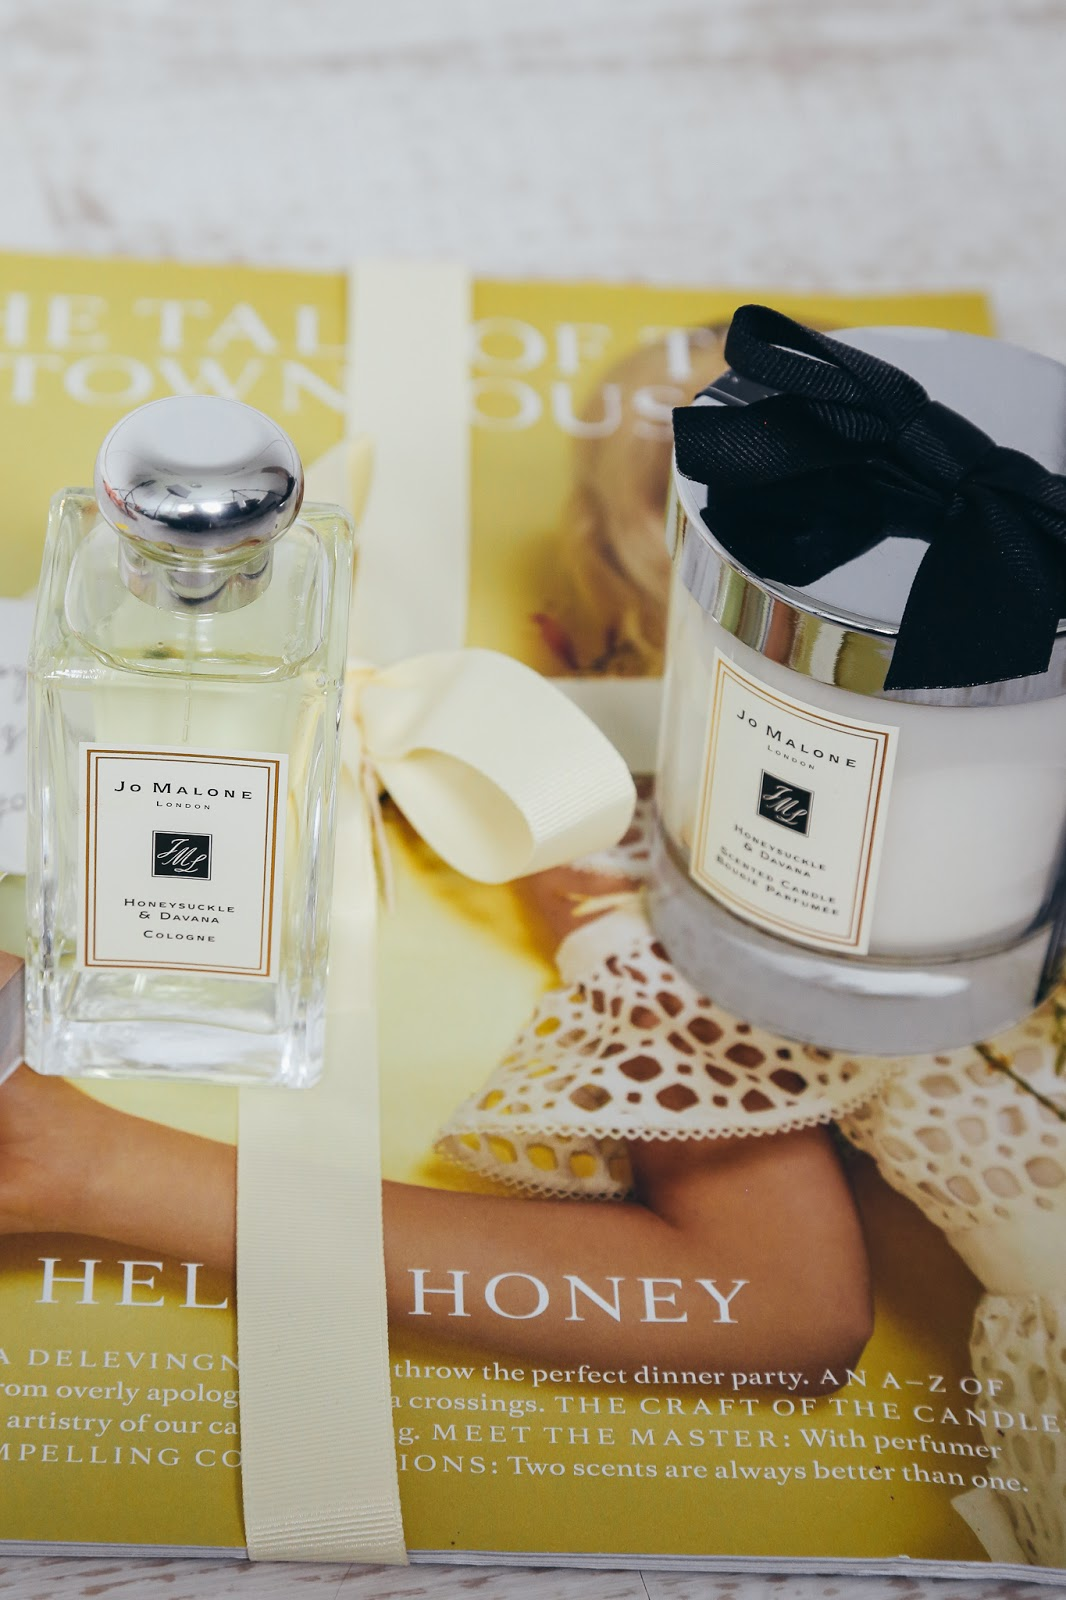 jo malone honeysucke candle